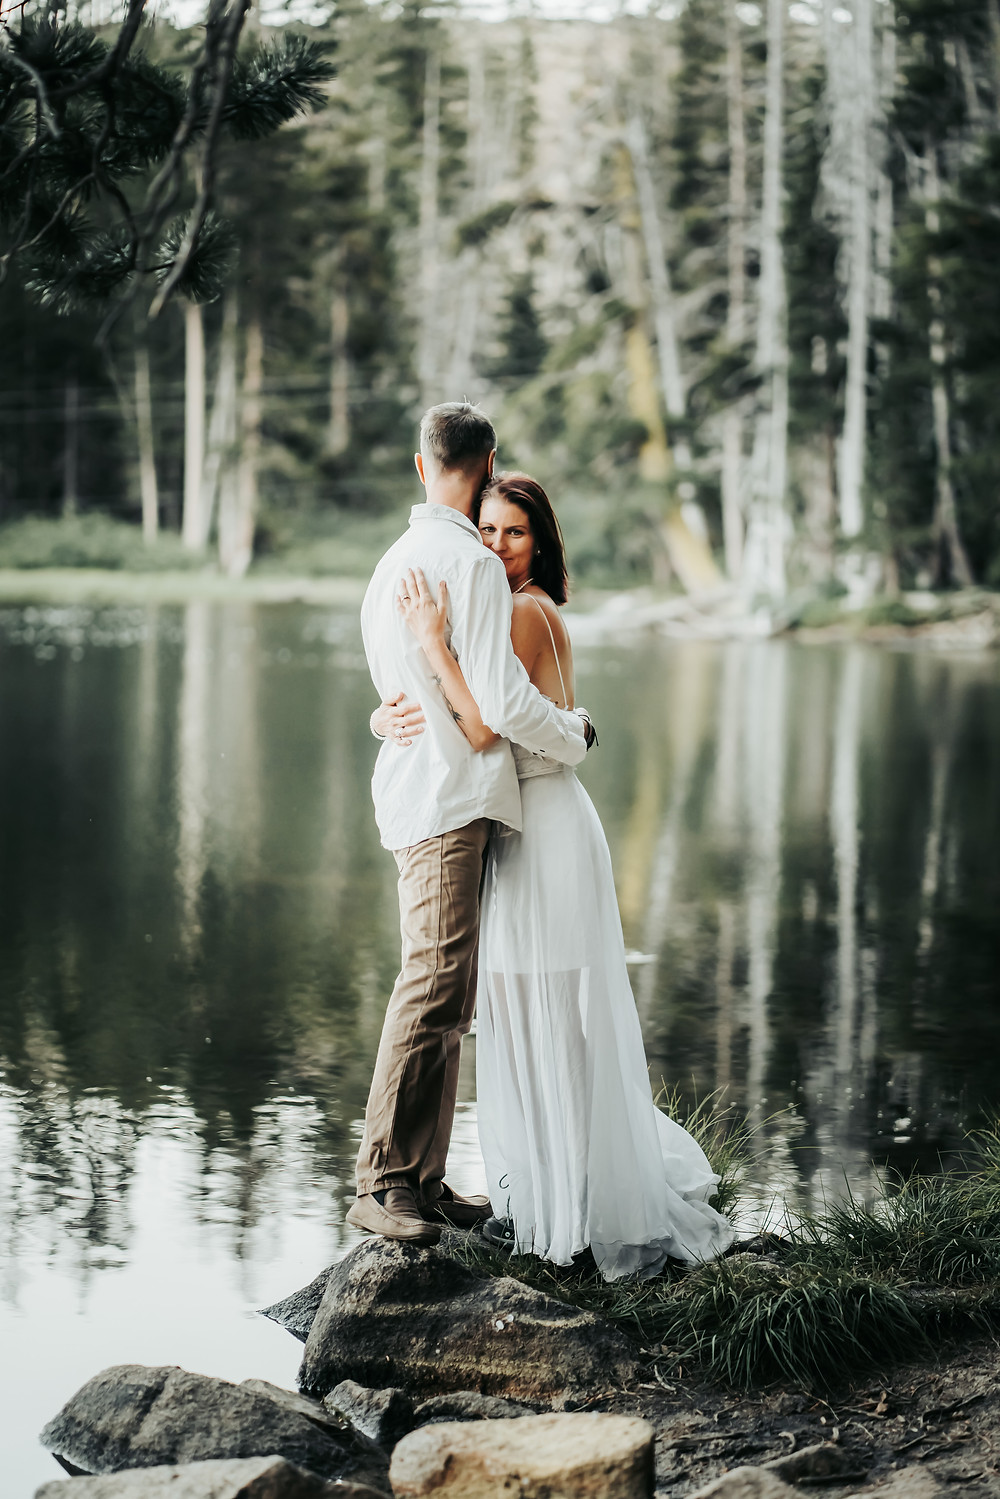 Bride and Groom embracing in front of a beautiful lake with a reflection backdrop.  Photos are of eloping in Lake Tahoe